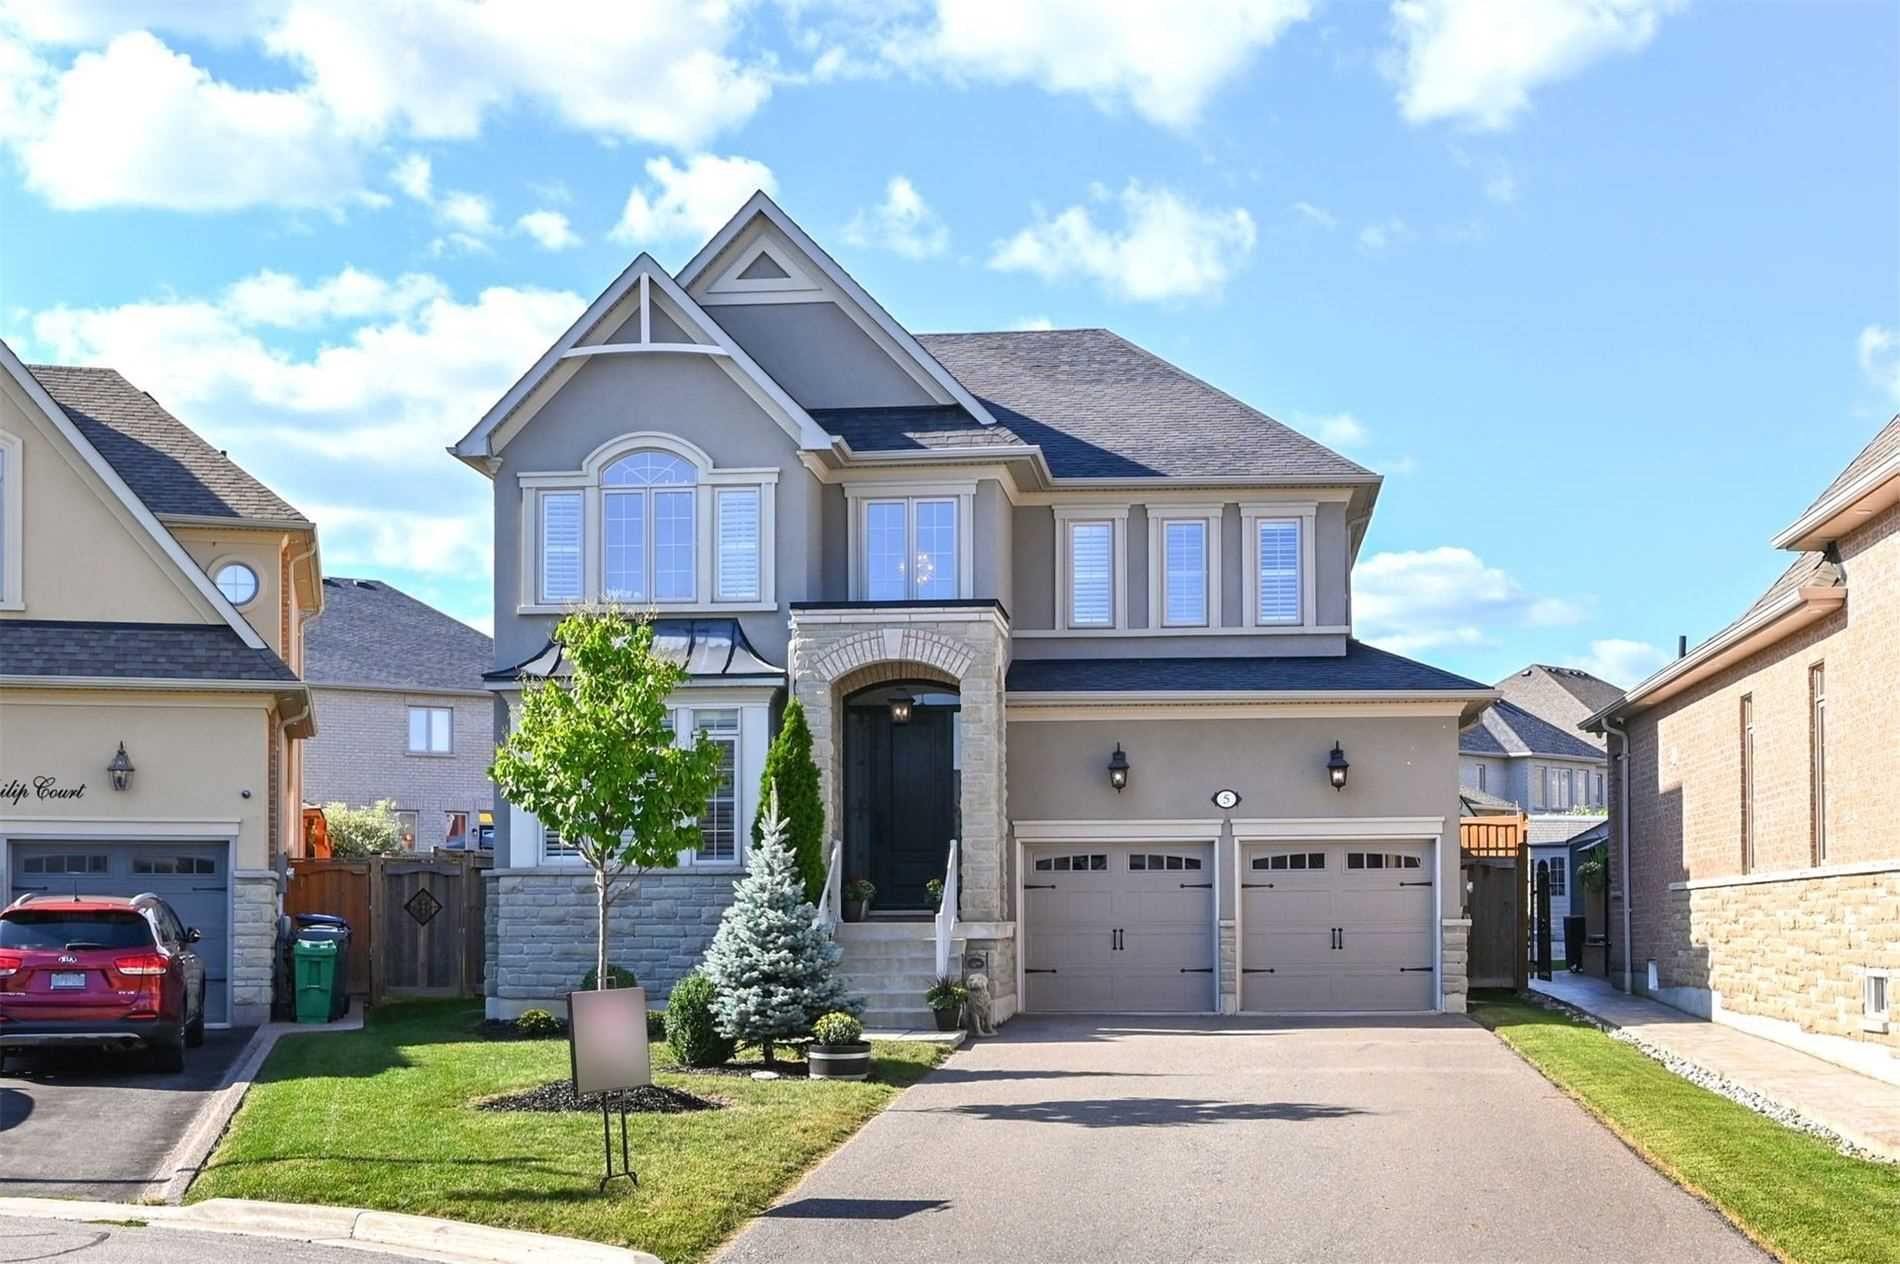 Main Photo: 5 Prince Philip Court in Caledon: Caledon East House (2-Storey) for sale : MLS®# W5362658